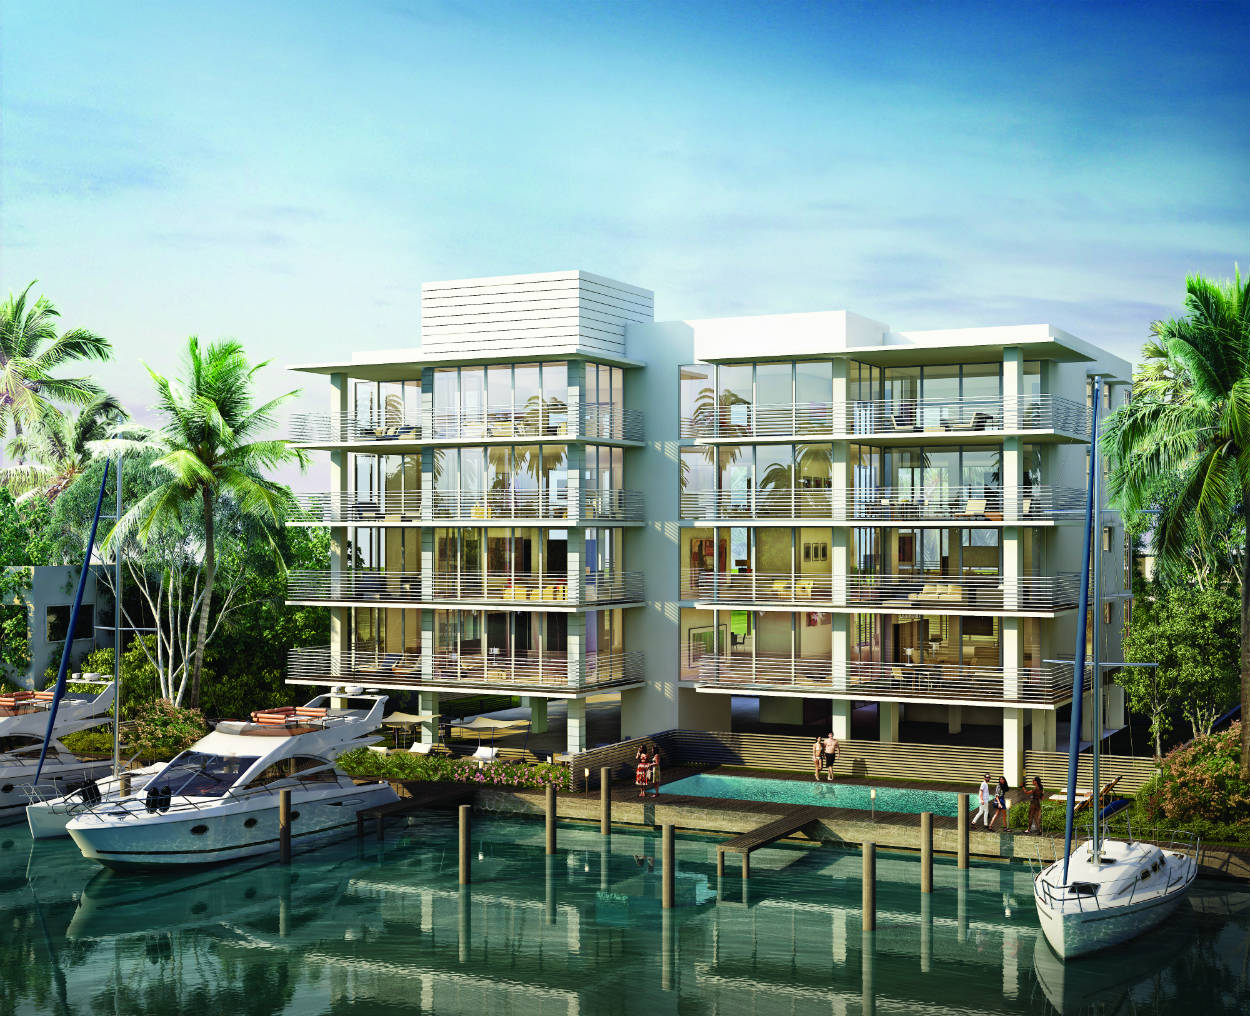 AquaVue balcony rendering, designed with a younger generation in mind.